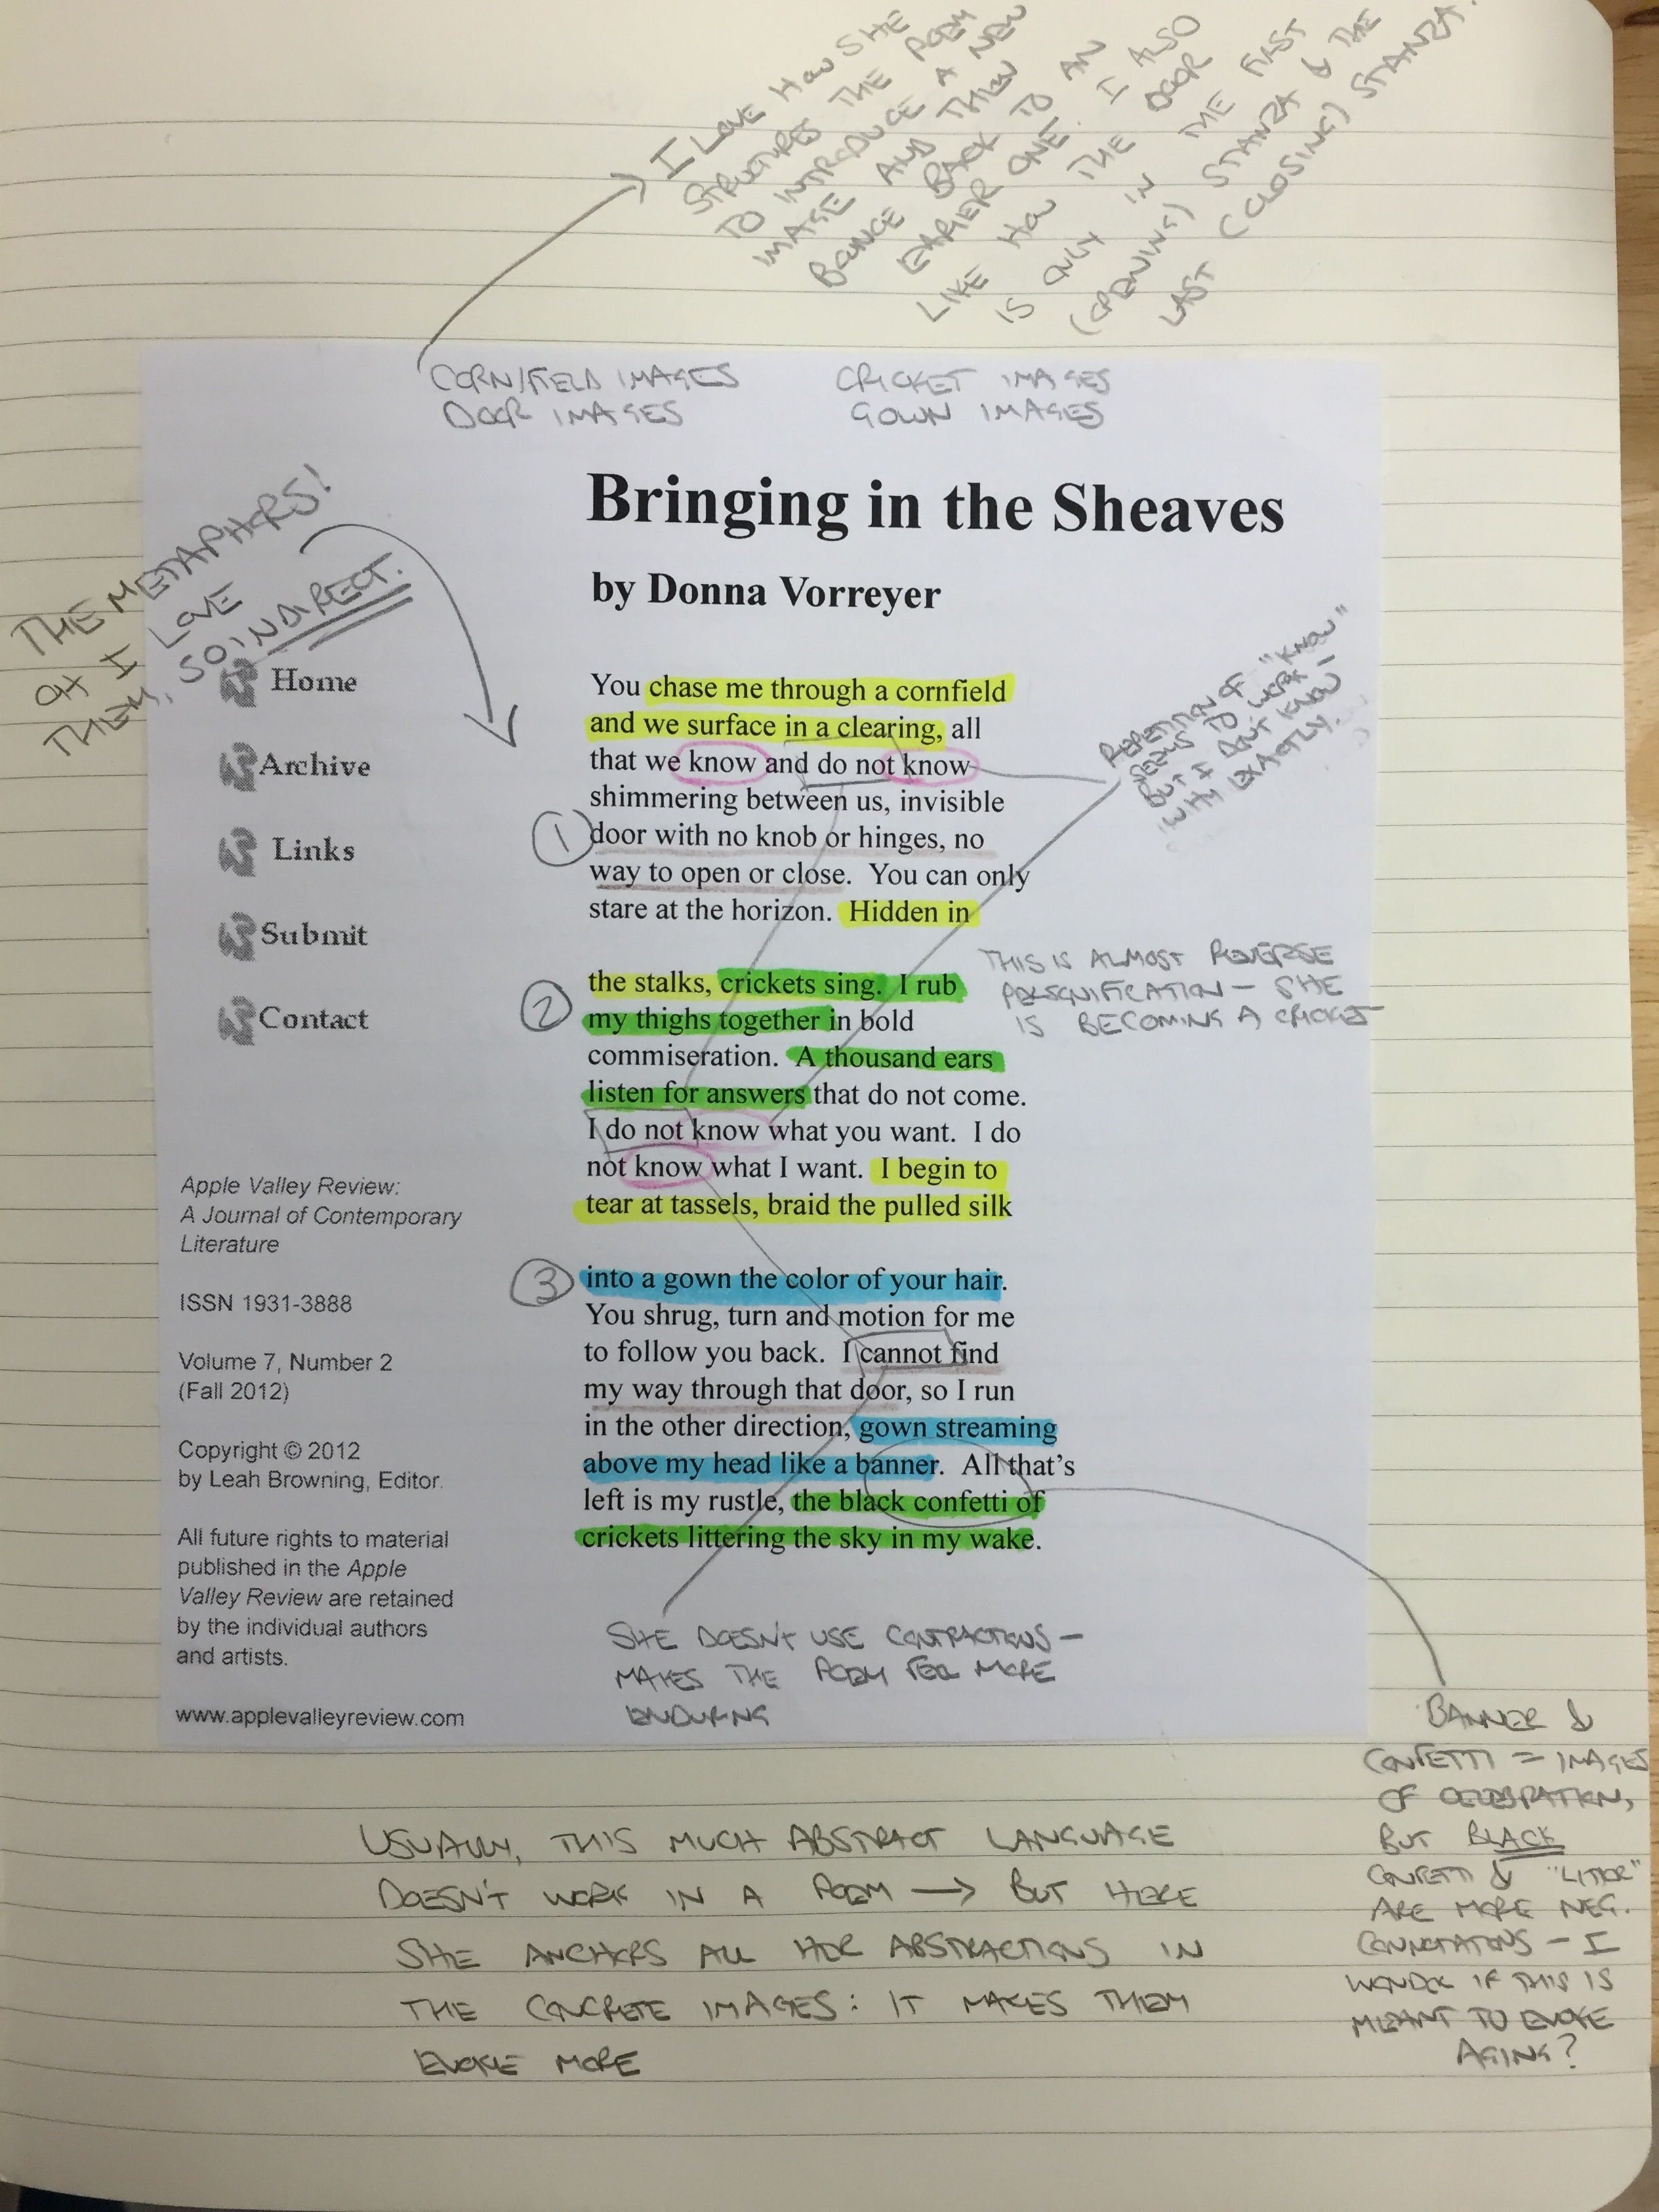 11 28 Poem Annotating Creative Writing